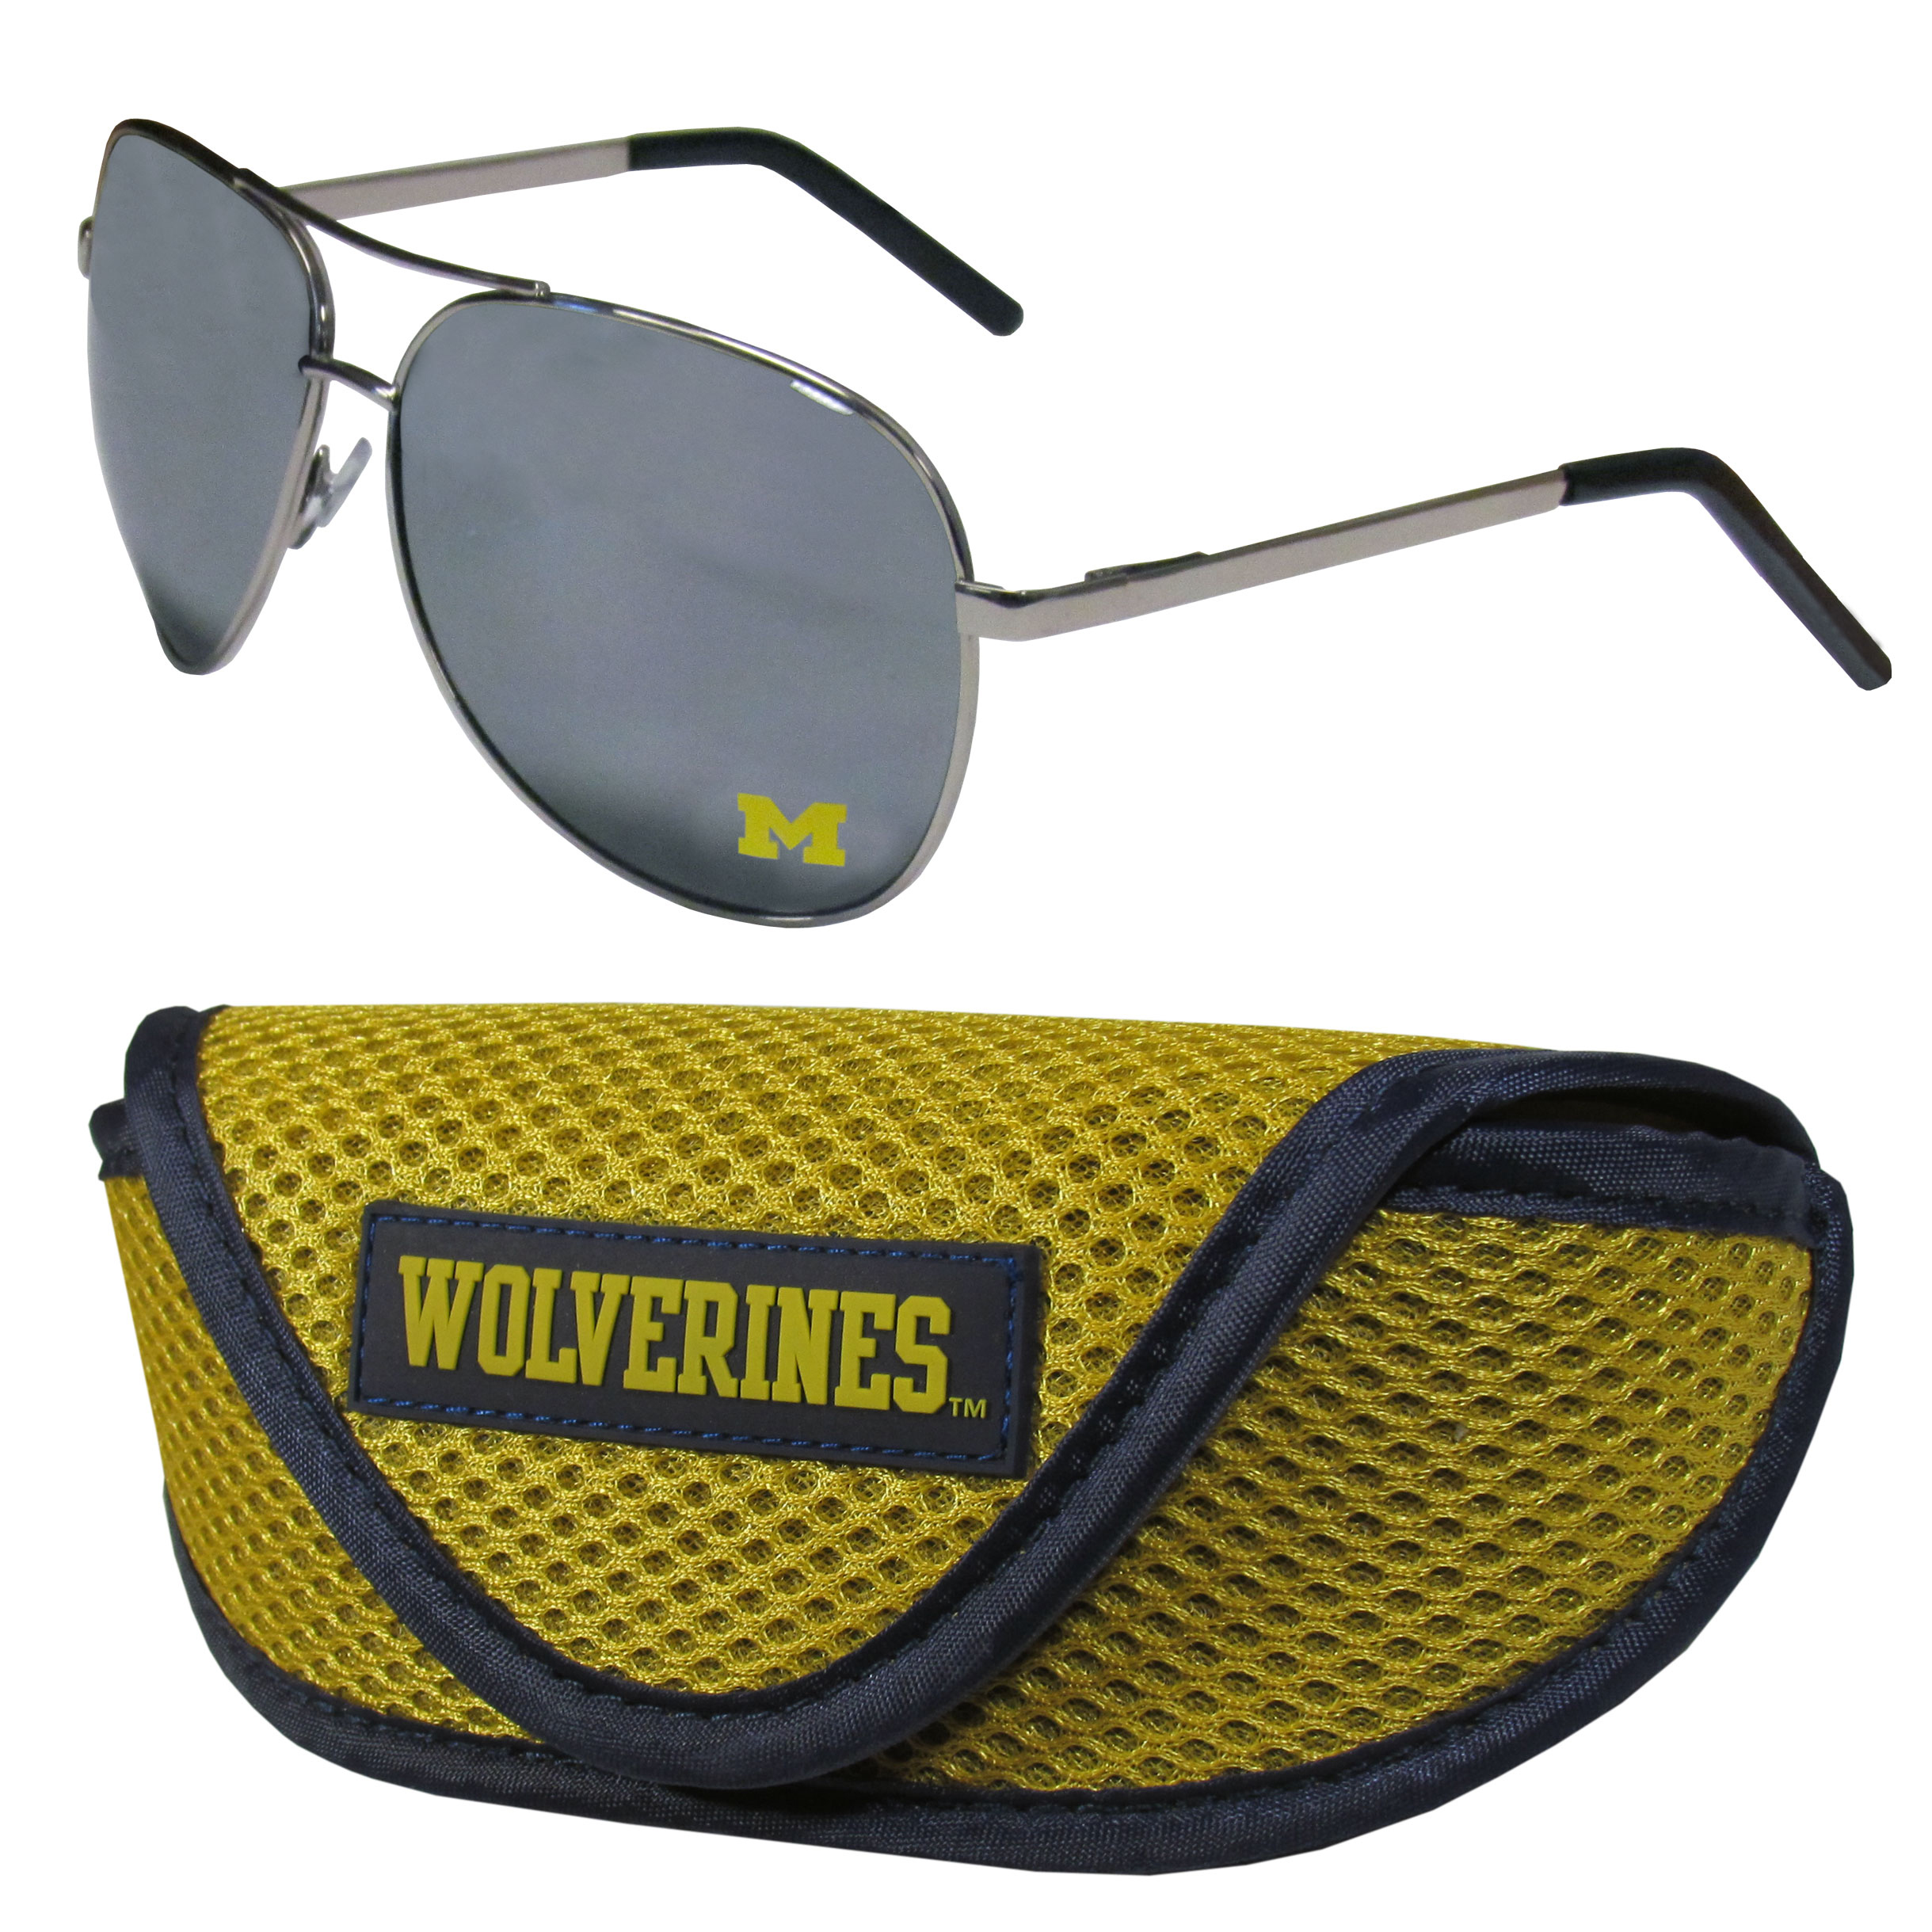 Michigan Wolverines Aviator Sunglasses and Sports Case - Aviator sunglasses are truly an iconic retro fashion statement that never goes out-of-style. Our Michigan Wolverines  aviator sunglasses pair this classic look with your love of the game. The iridium coated lenses reduce glare while driving, boating, golfing and their 100% UVA/UVB rating provides you with the maximum UV protection for all your outdoor activities. A millennial favorite, these affordable designer frames are the perfect eyewear accessory for a sports fan that is looking for high-quality at an affordable price. The durable, flex hinged frames are tough enough for hiking and camping or if you prefer sun bathing by the pool or on the beach these shades will really stand the test of time. The sunglasses come with a sporty case which has a large team logo on the lid that will make even the most die-hard fan proud!